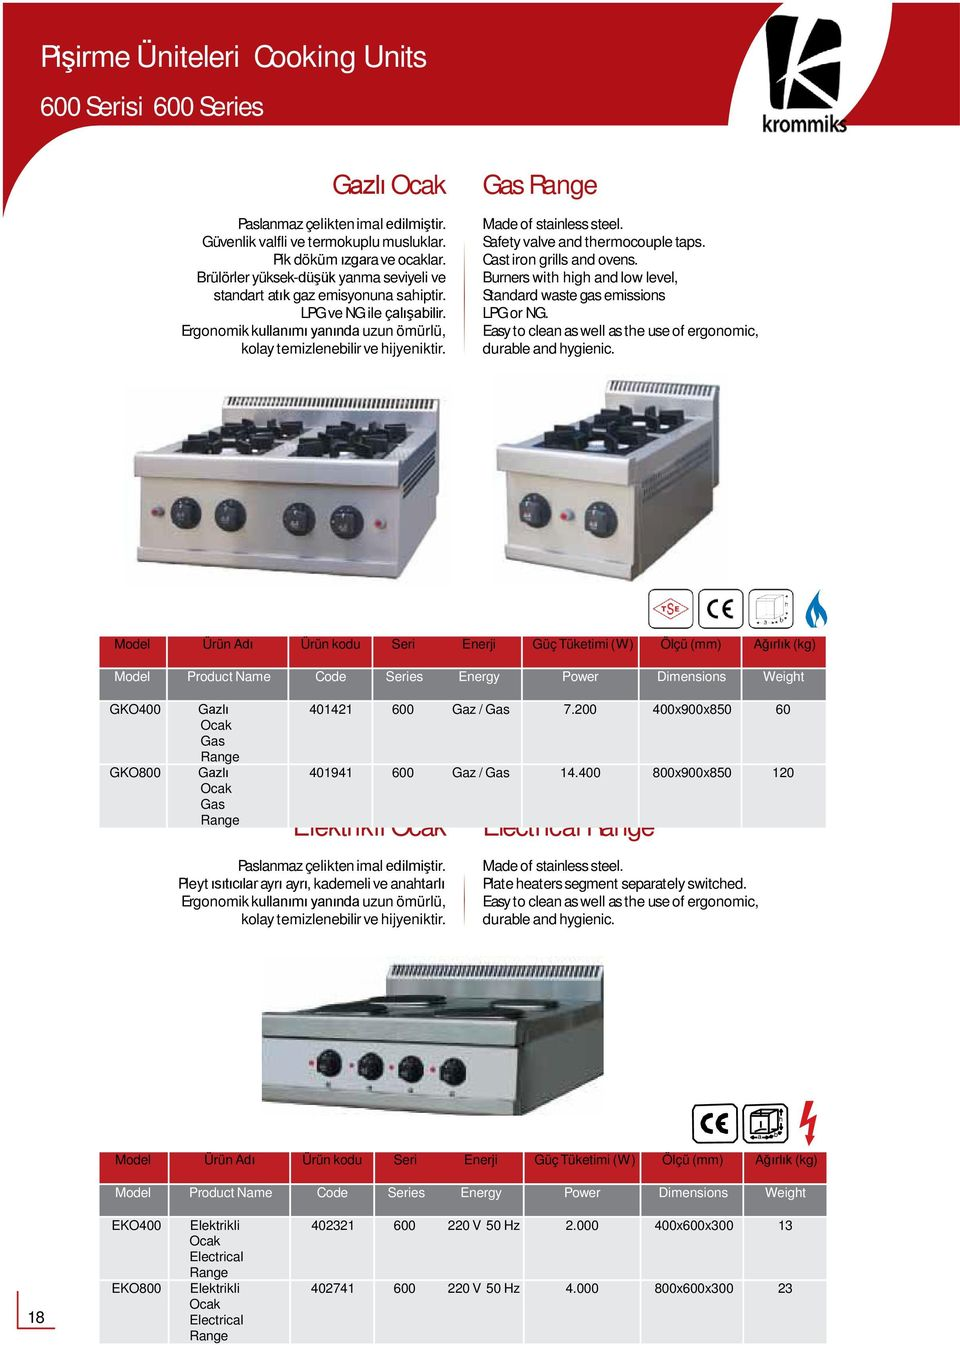 Gas Range Safety valve and thermocouple taps. Cast iron grills and ovens. Burners with high and low level, Standard waste gas emissions LPGor NG.